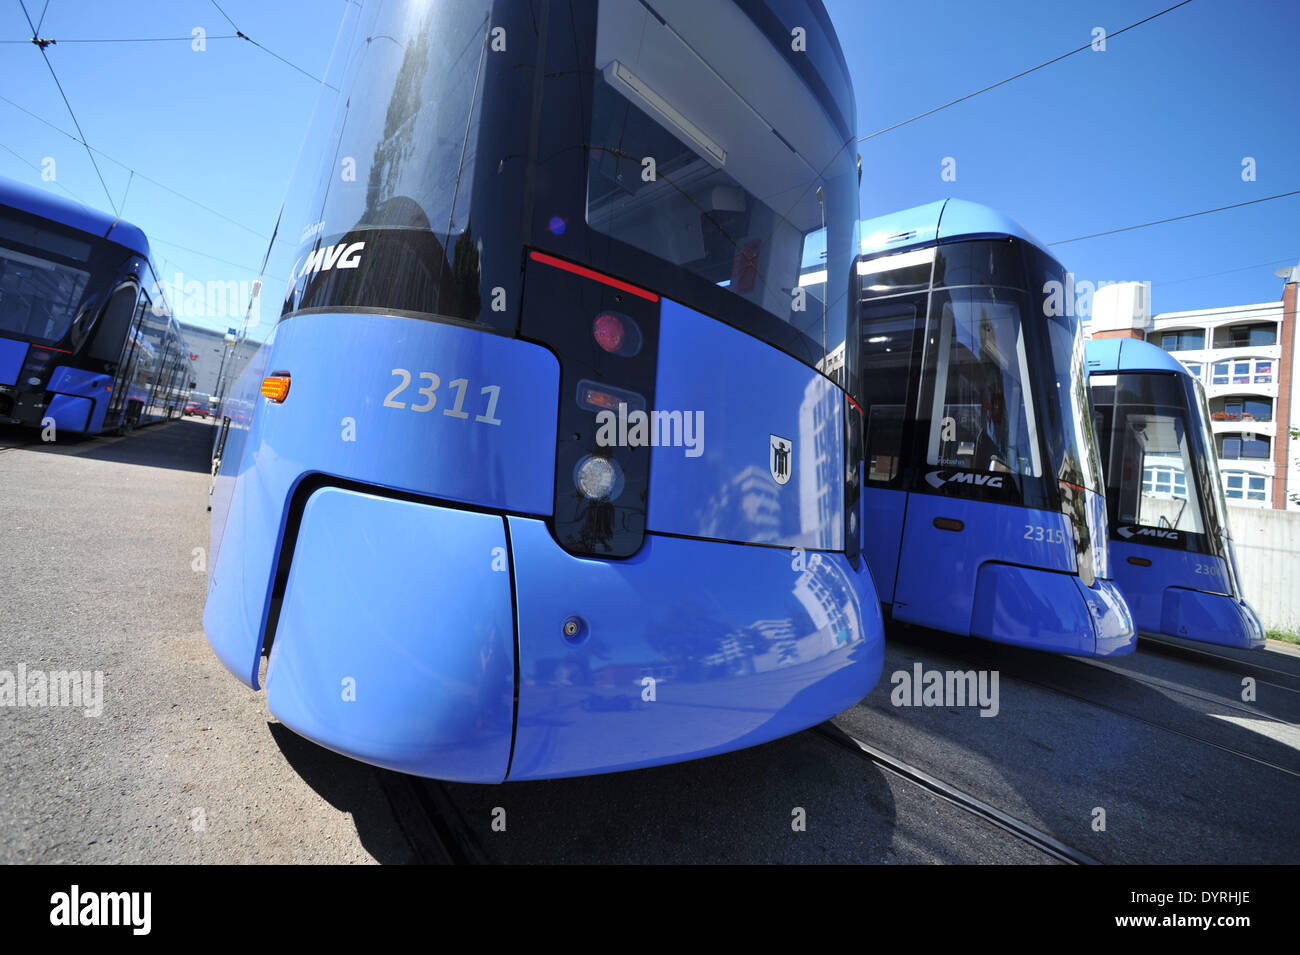 'Variotram' streetcars in the depot of MVG, 2011 - Stock Image